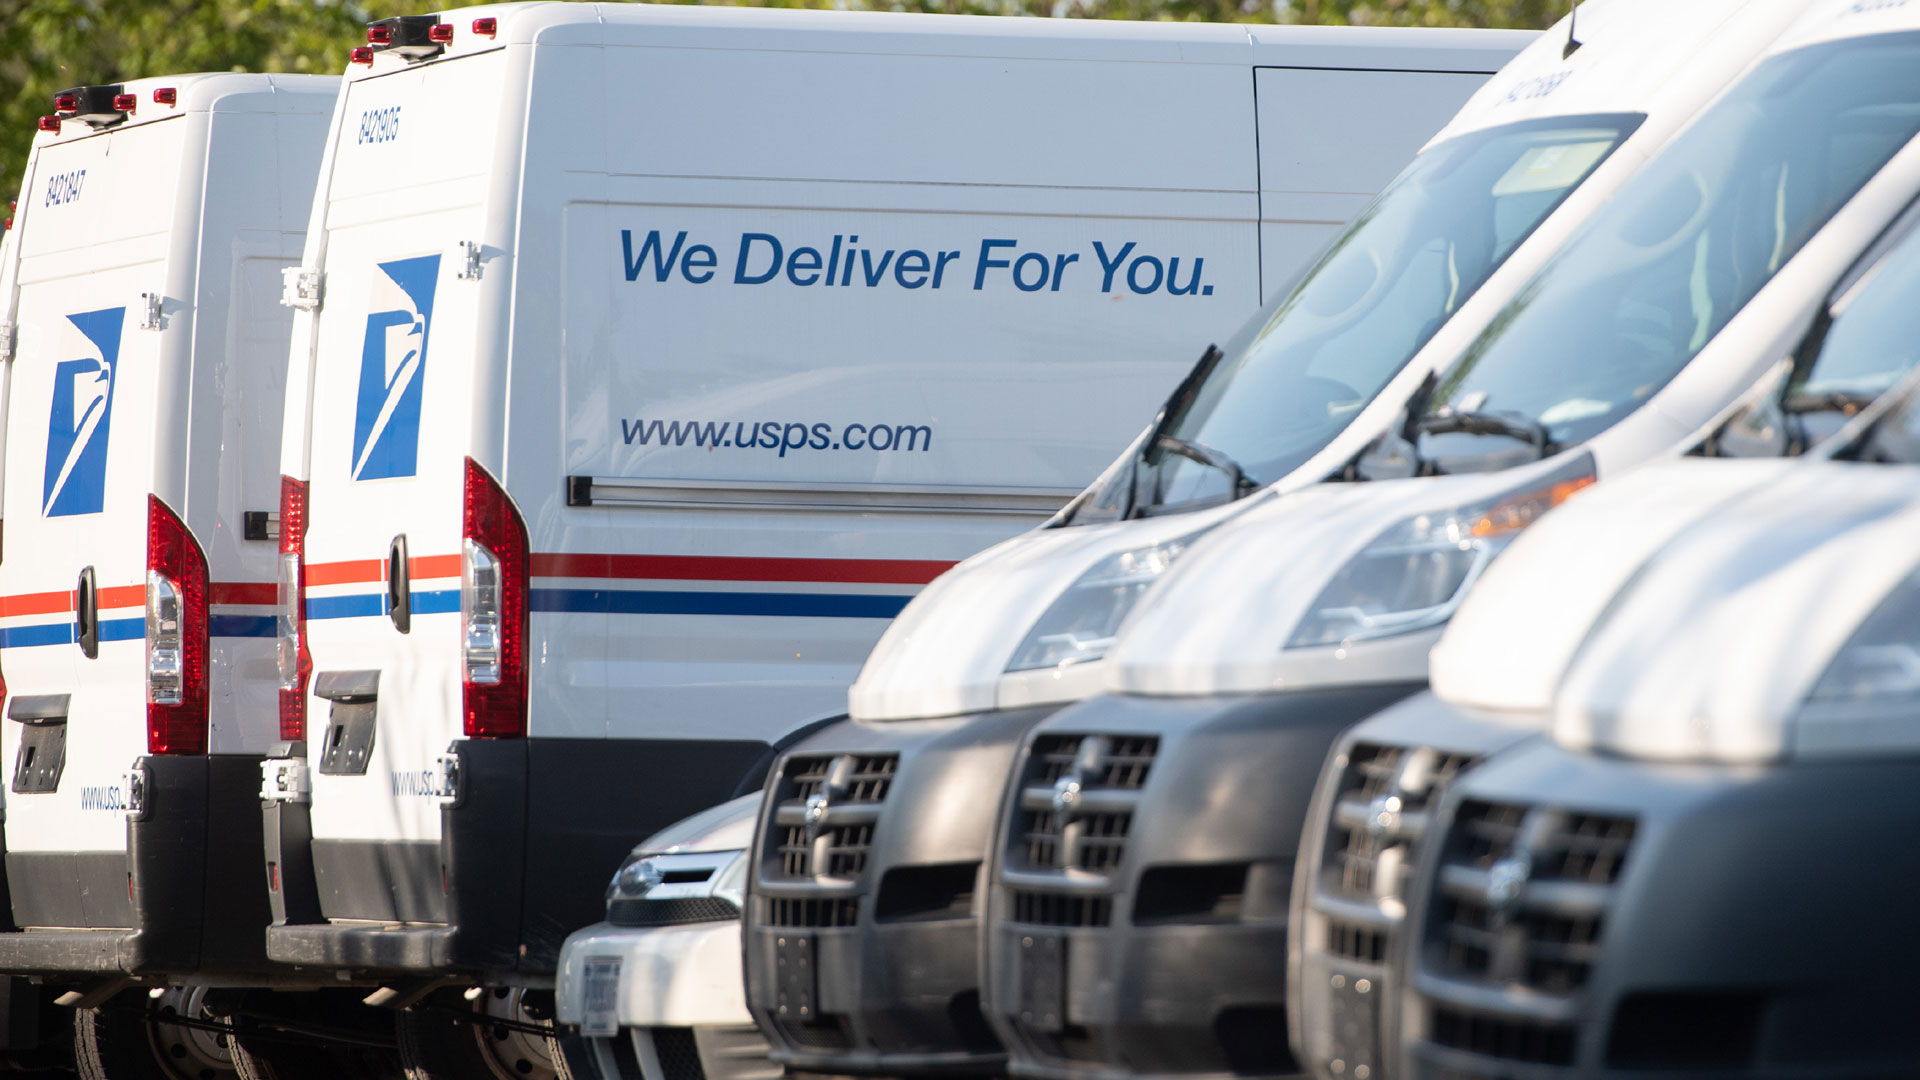 Postal trucks are parked at a United States Postal Service (USPS) post office location. (Photo by SAUL LOEB/AFP via Getty Images)